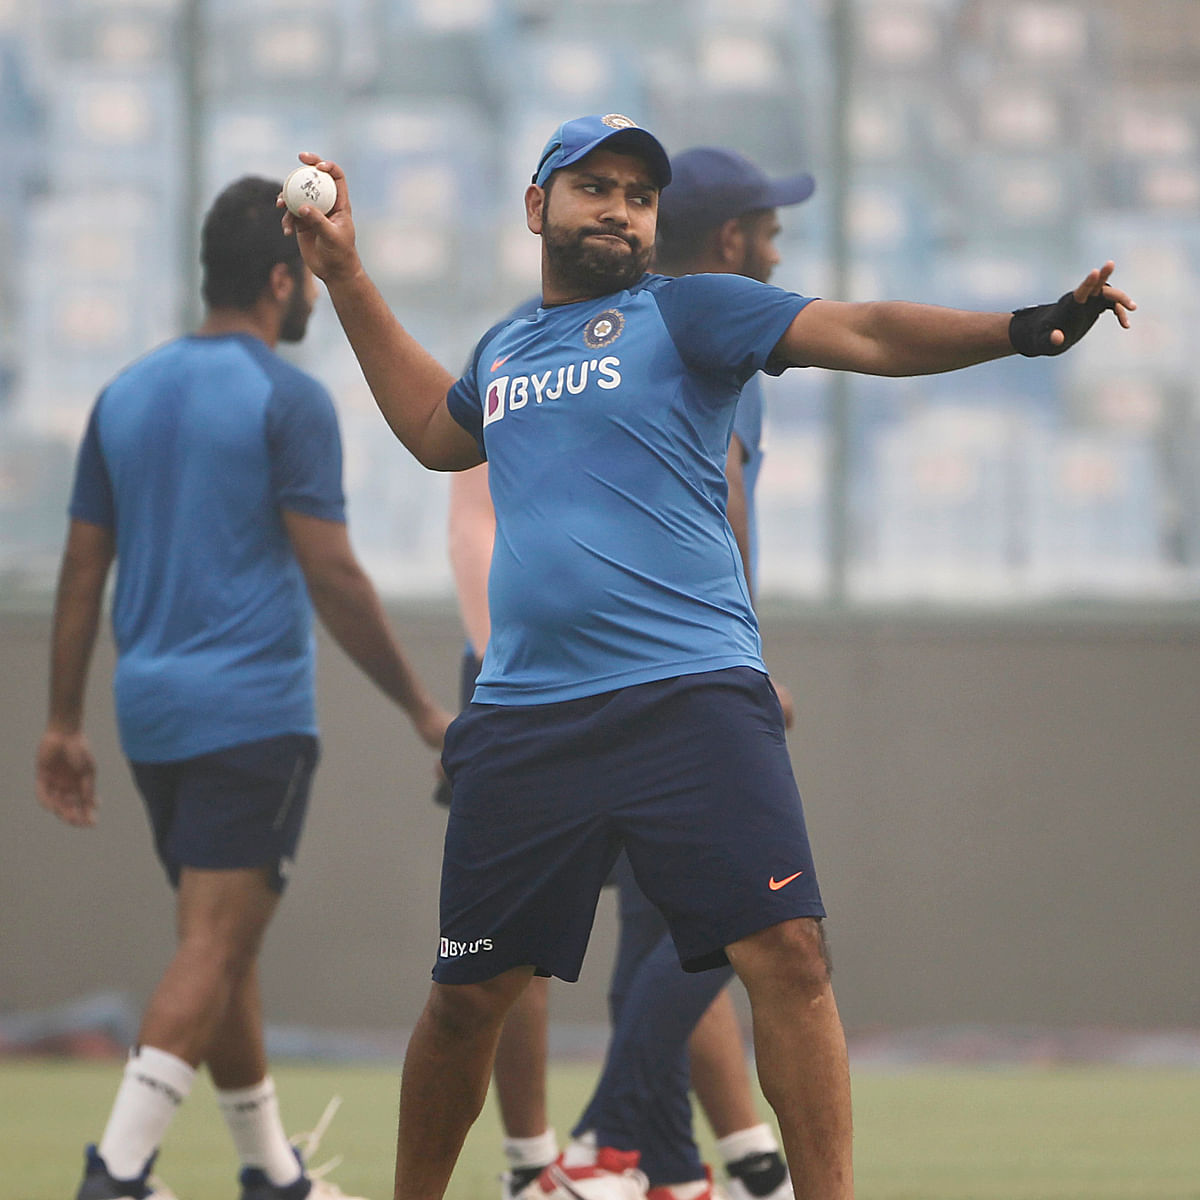 Is 'Hitman' Rohit Sharma trying to be a pace bowler now?